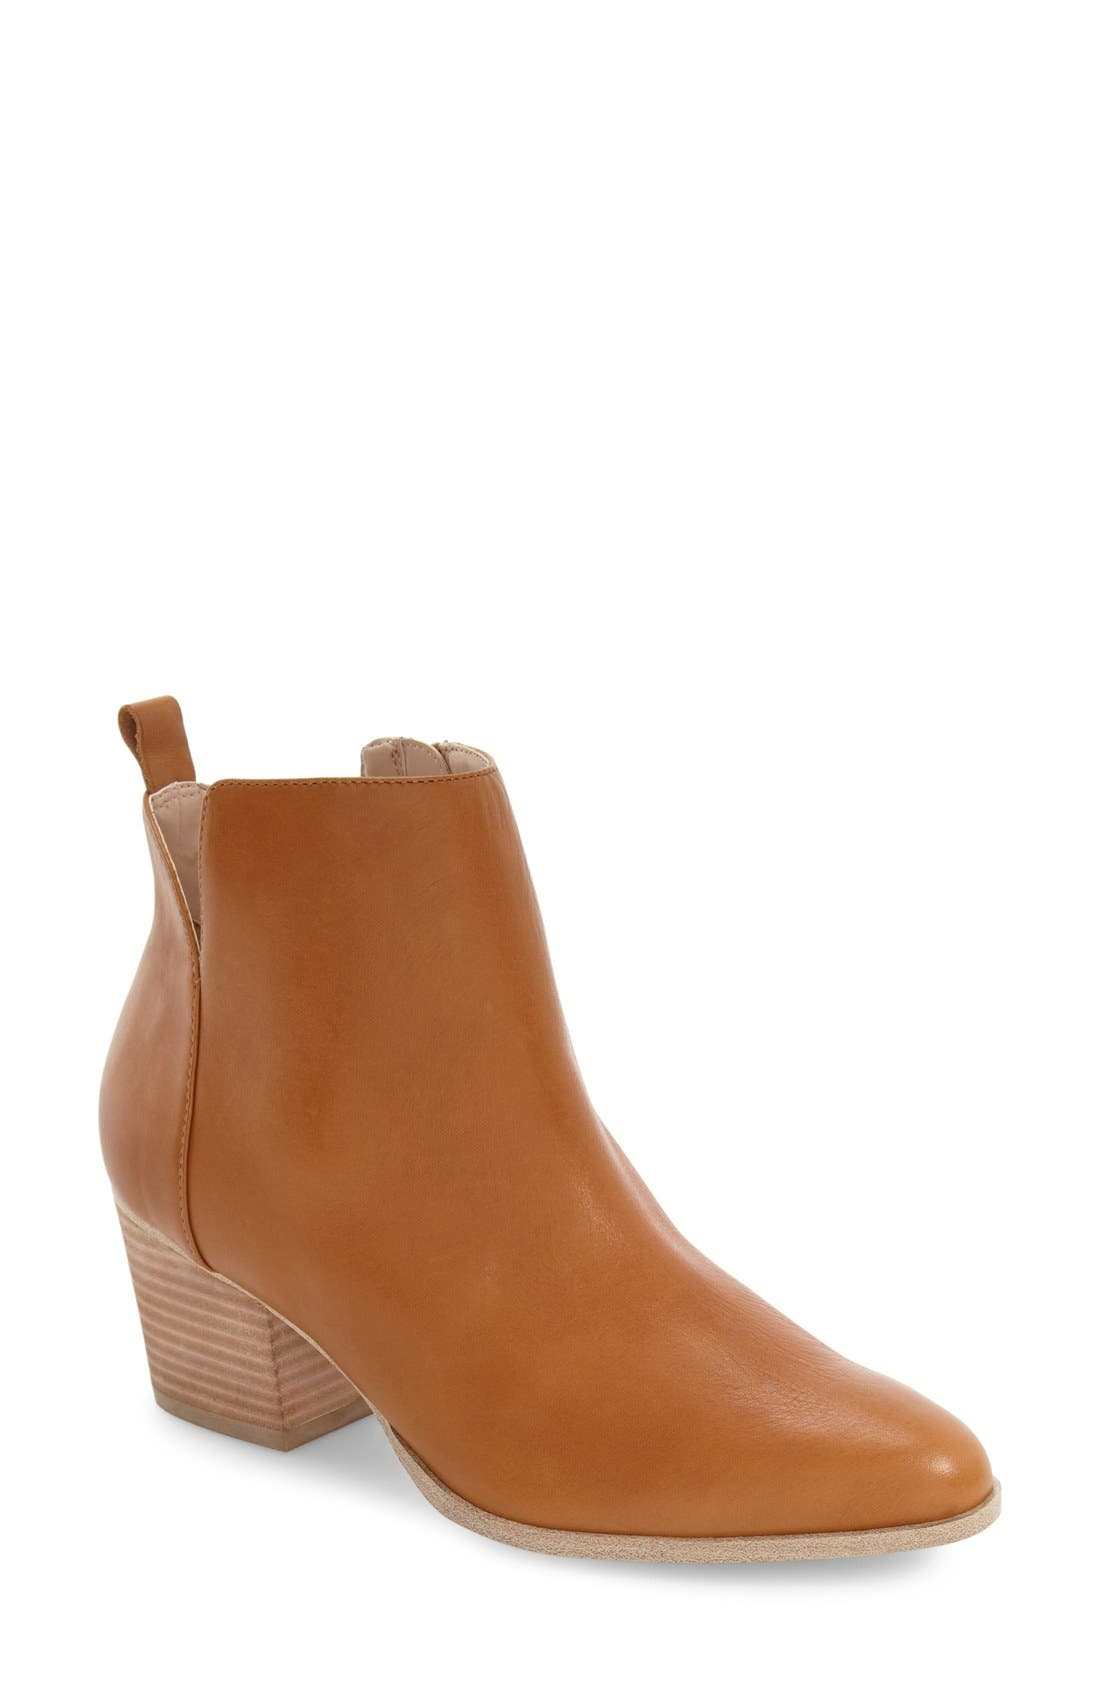 Alternate Image 1 Selected - Sole Society Bowie Bootie (Women)